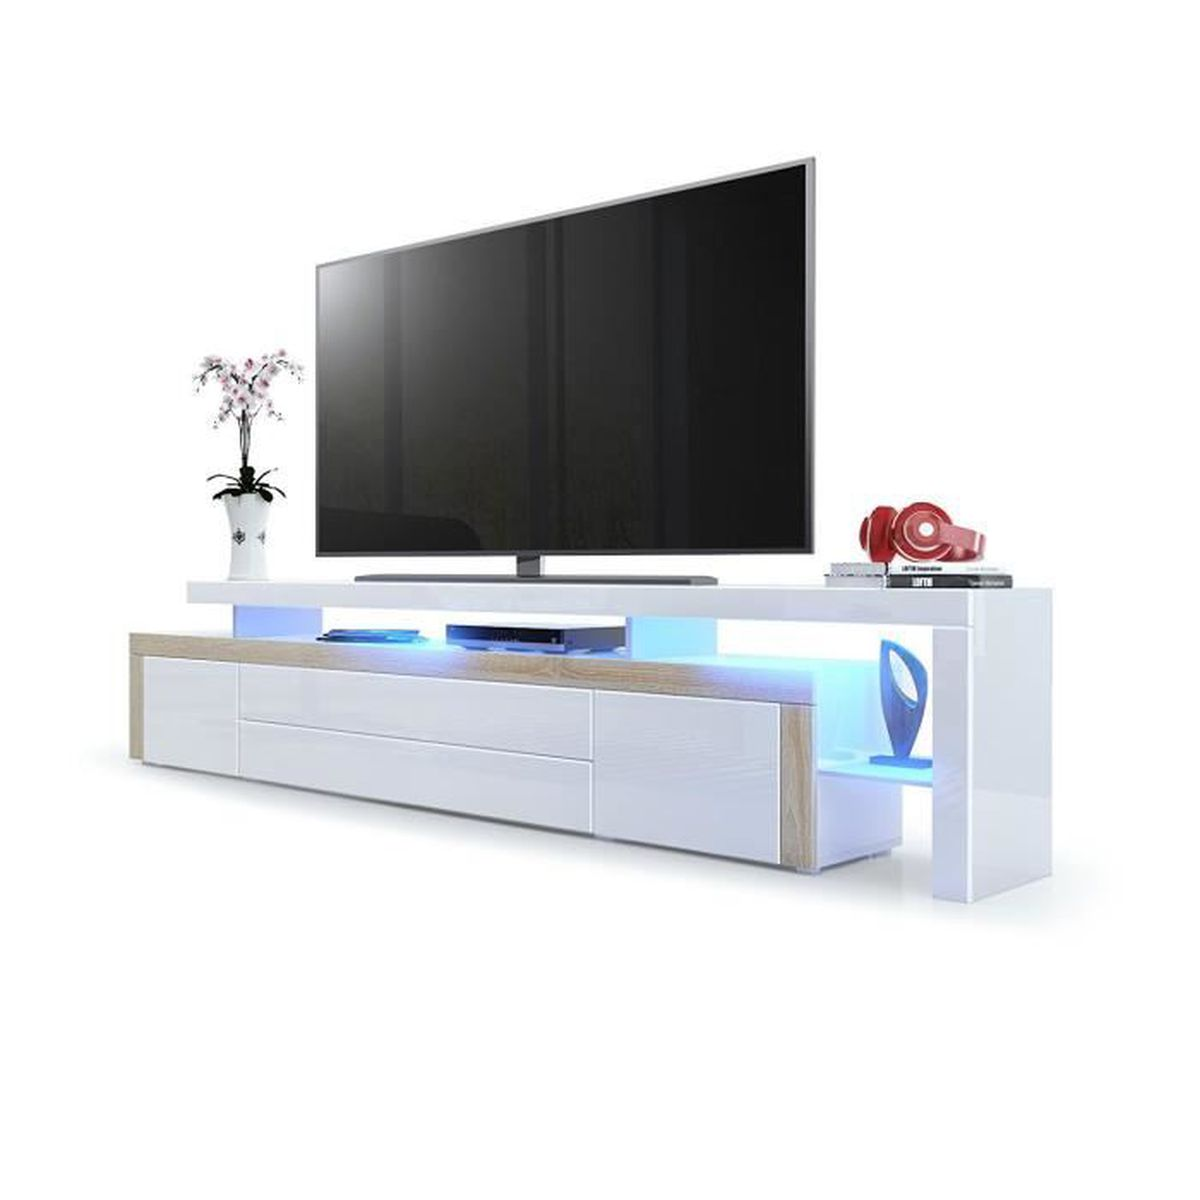 meuble tv c discount maison design. Black Bedroom Furniture Sets. Home Design Ideas